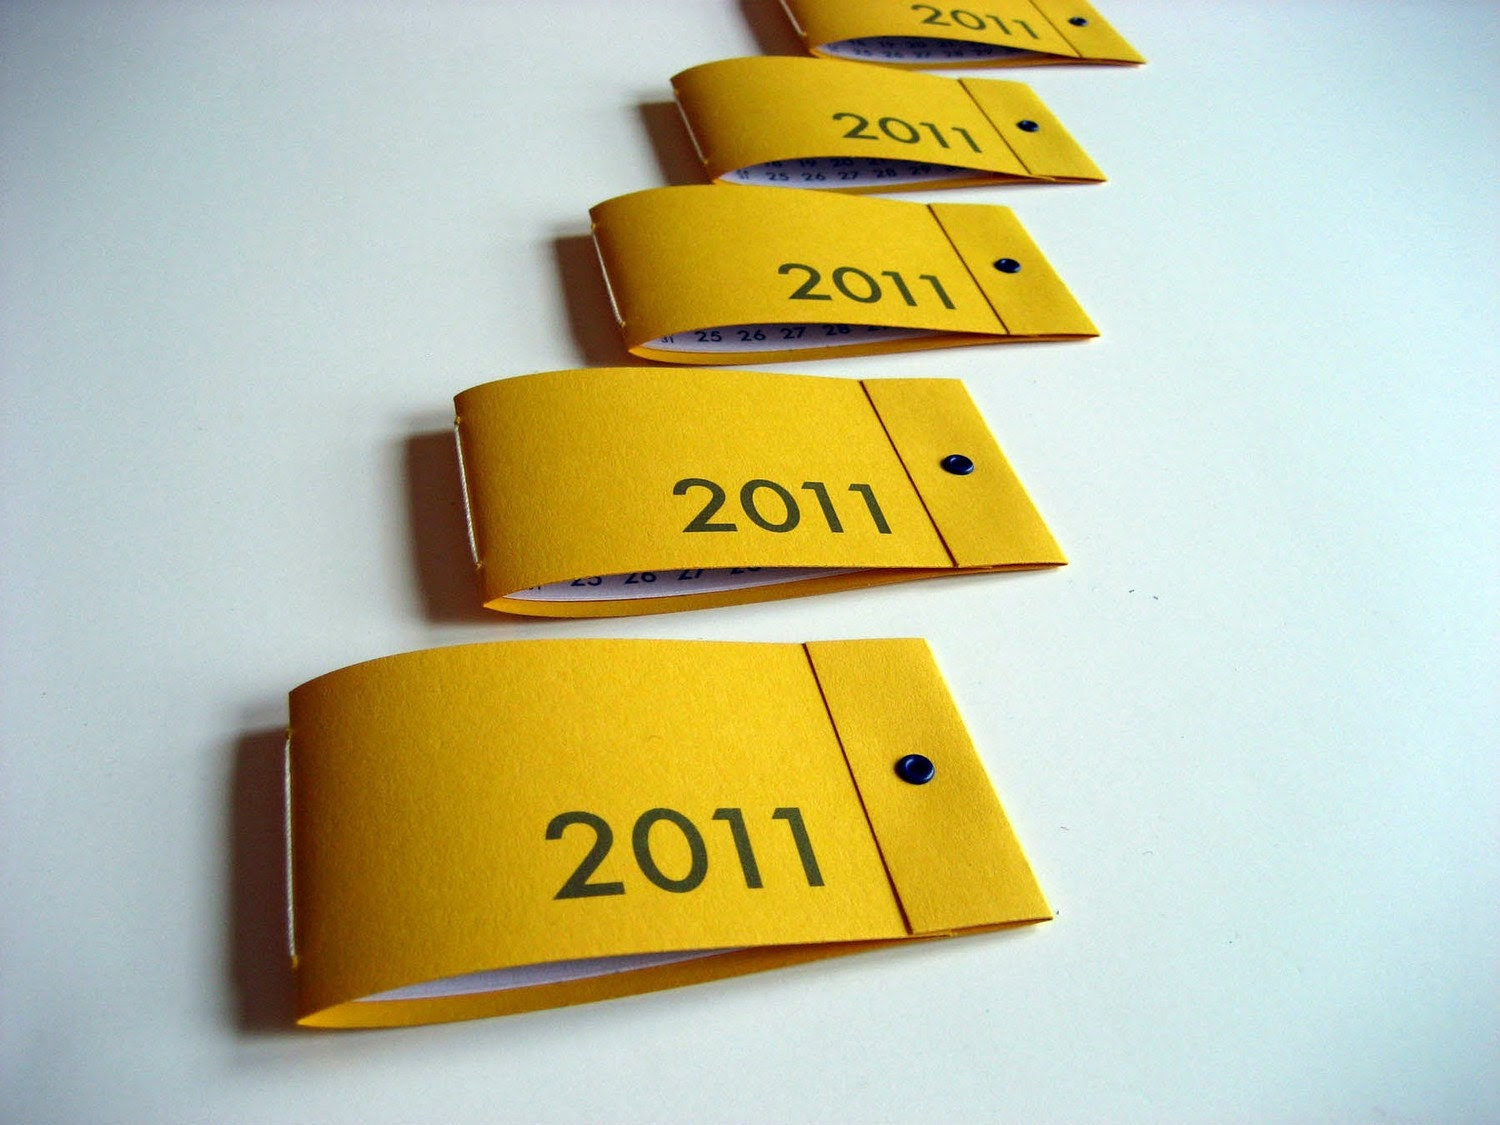 Sale 25% off - 10 Mini 2011 Calendar Matchbook Notebooks on yellow - custom party favors - Ready to Ship